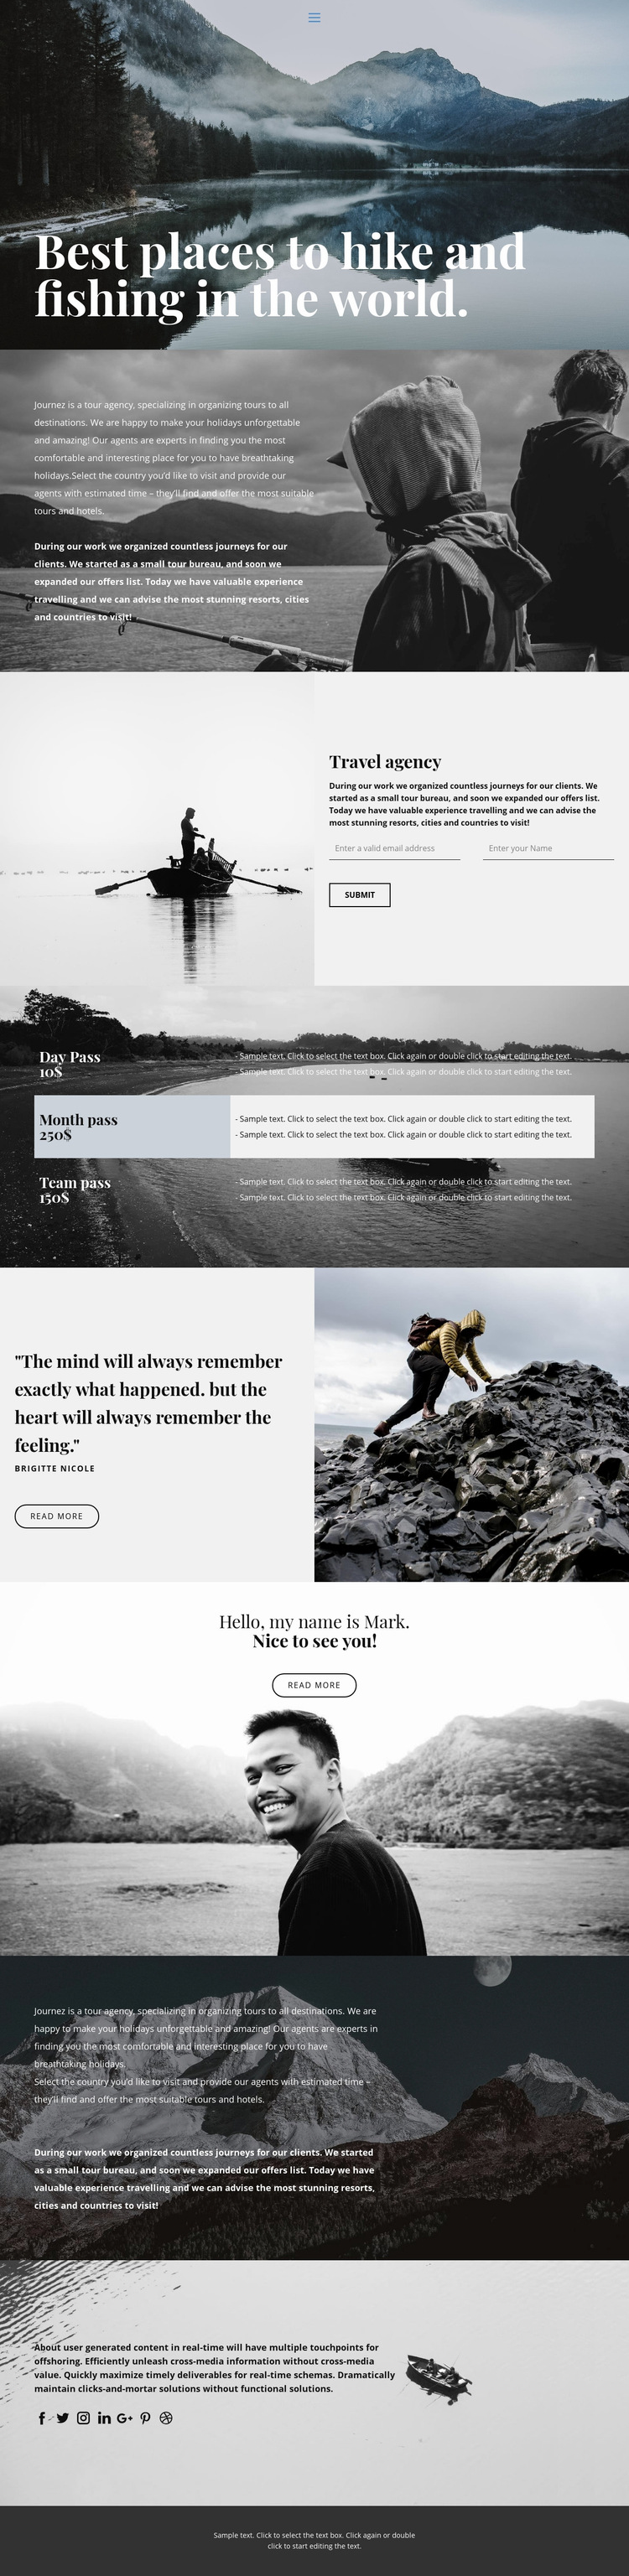 Best places for hiking and fishing Web Page Design